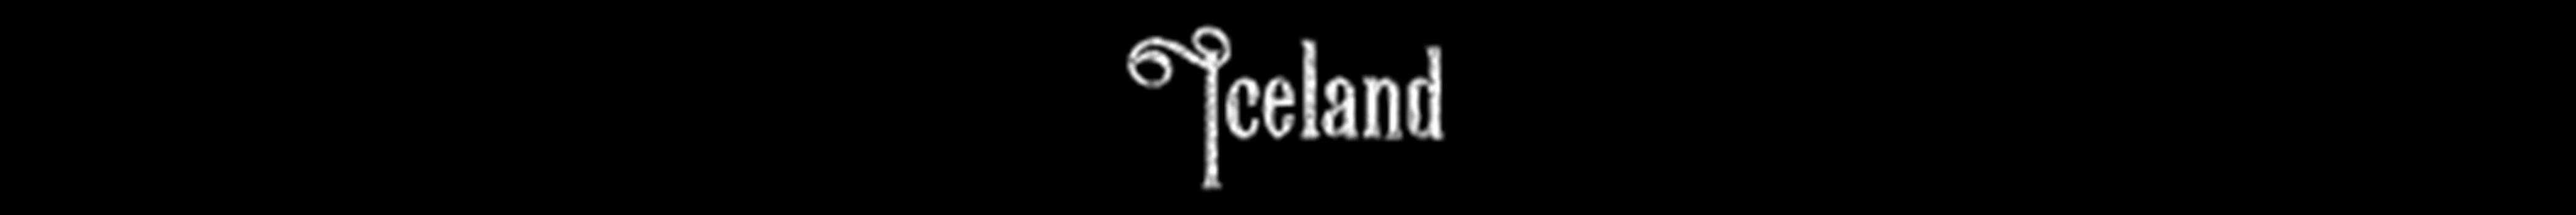 Iceland.png by CraftyQueen